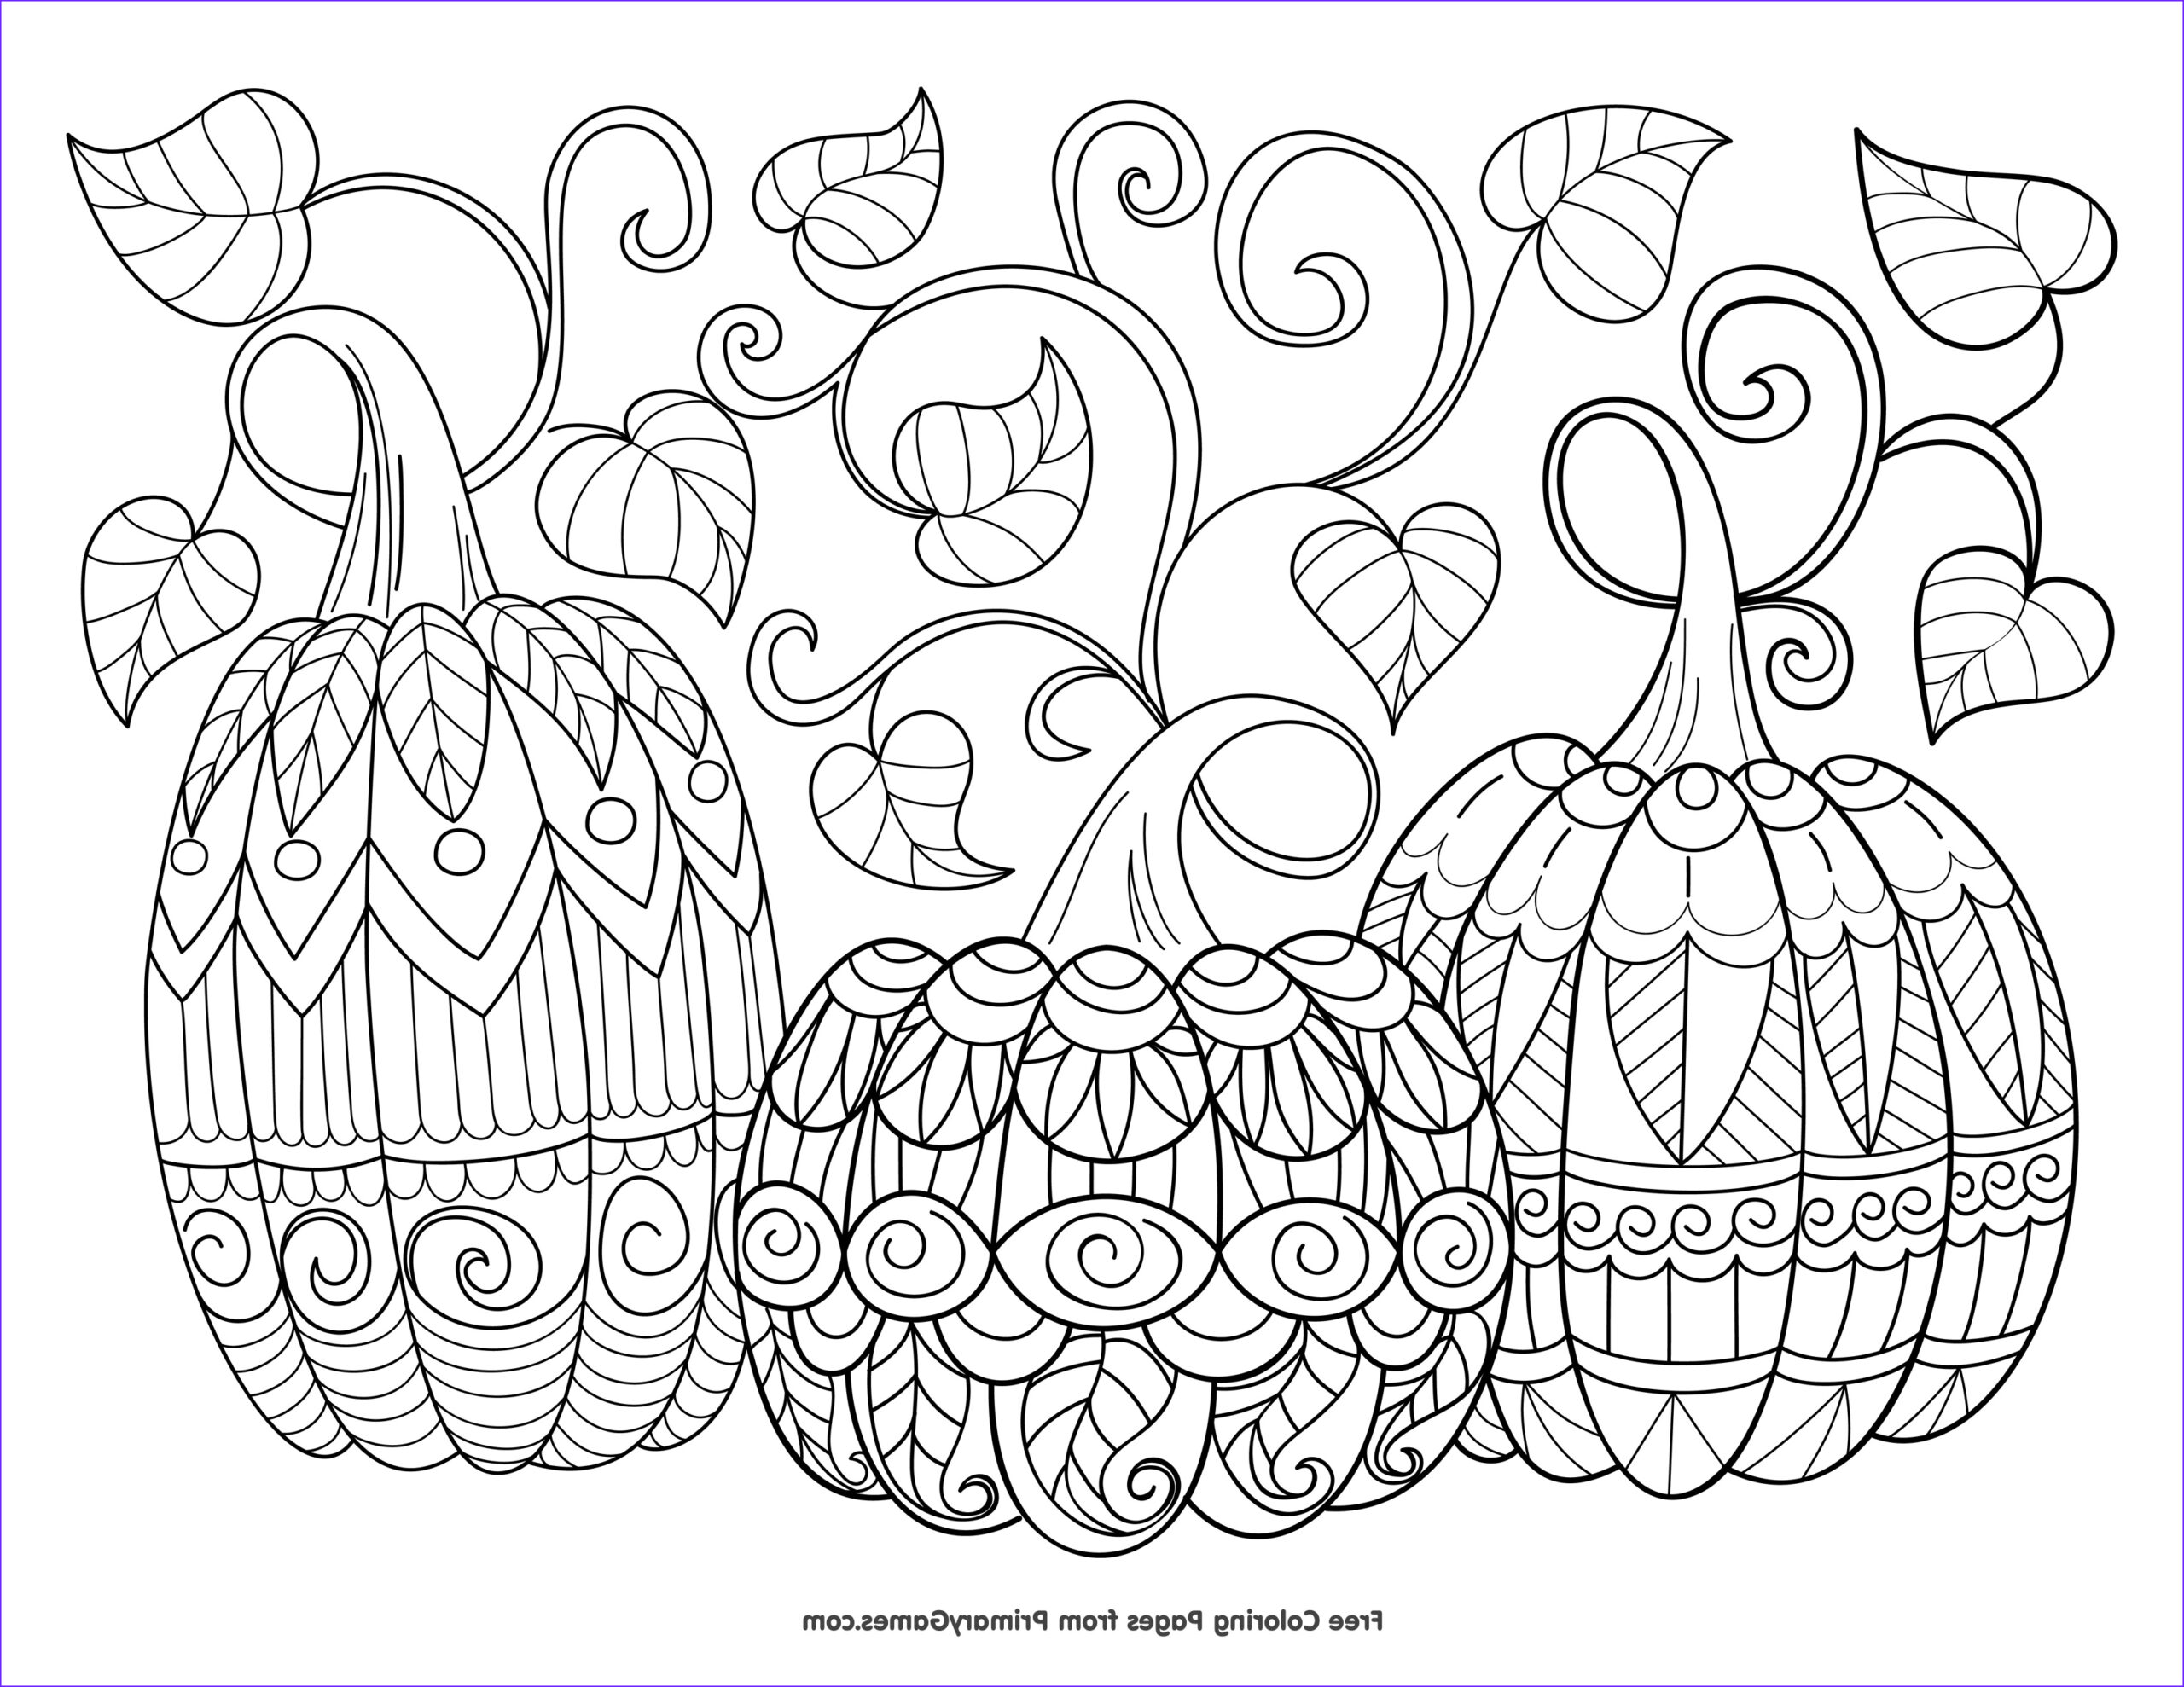 Halloween Coloring Pages Adults Elegant Images Free Halloween Coloring Pages for Adults & Kids